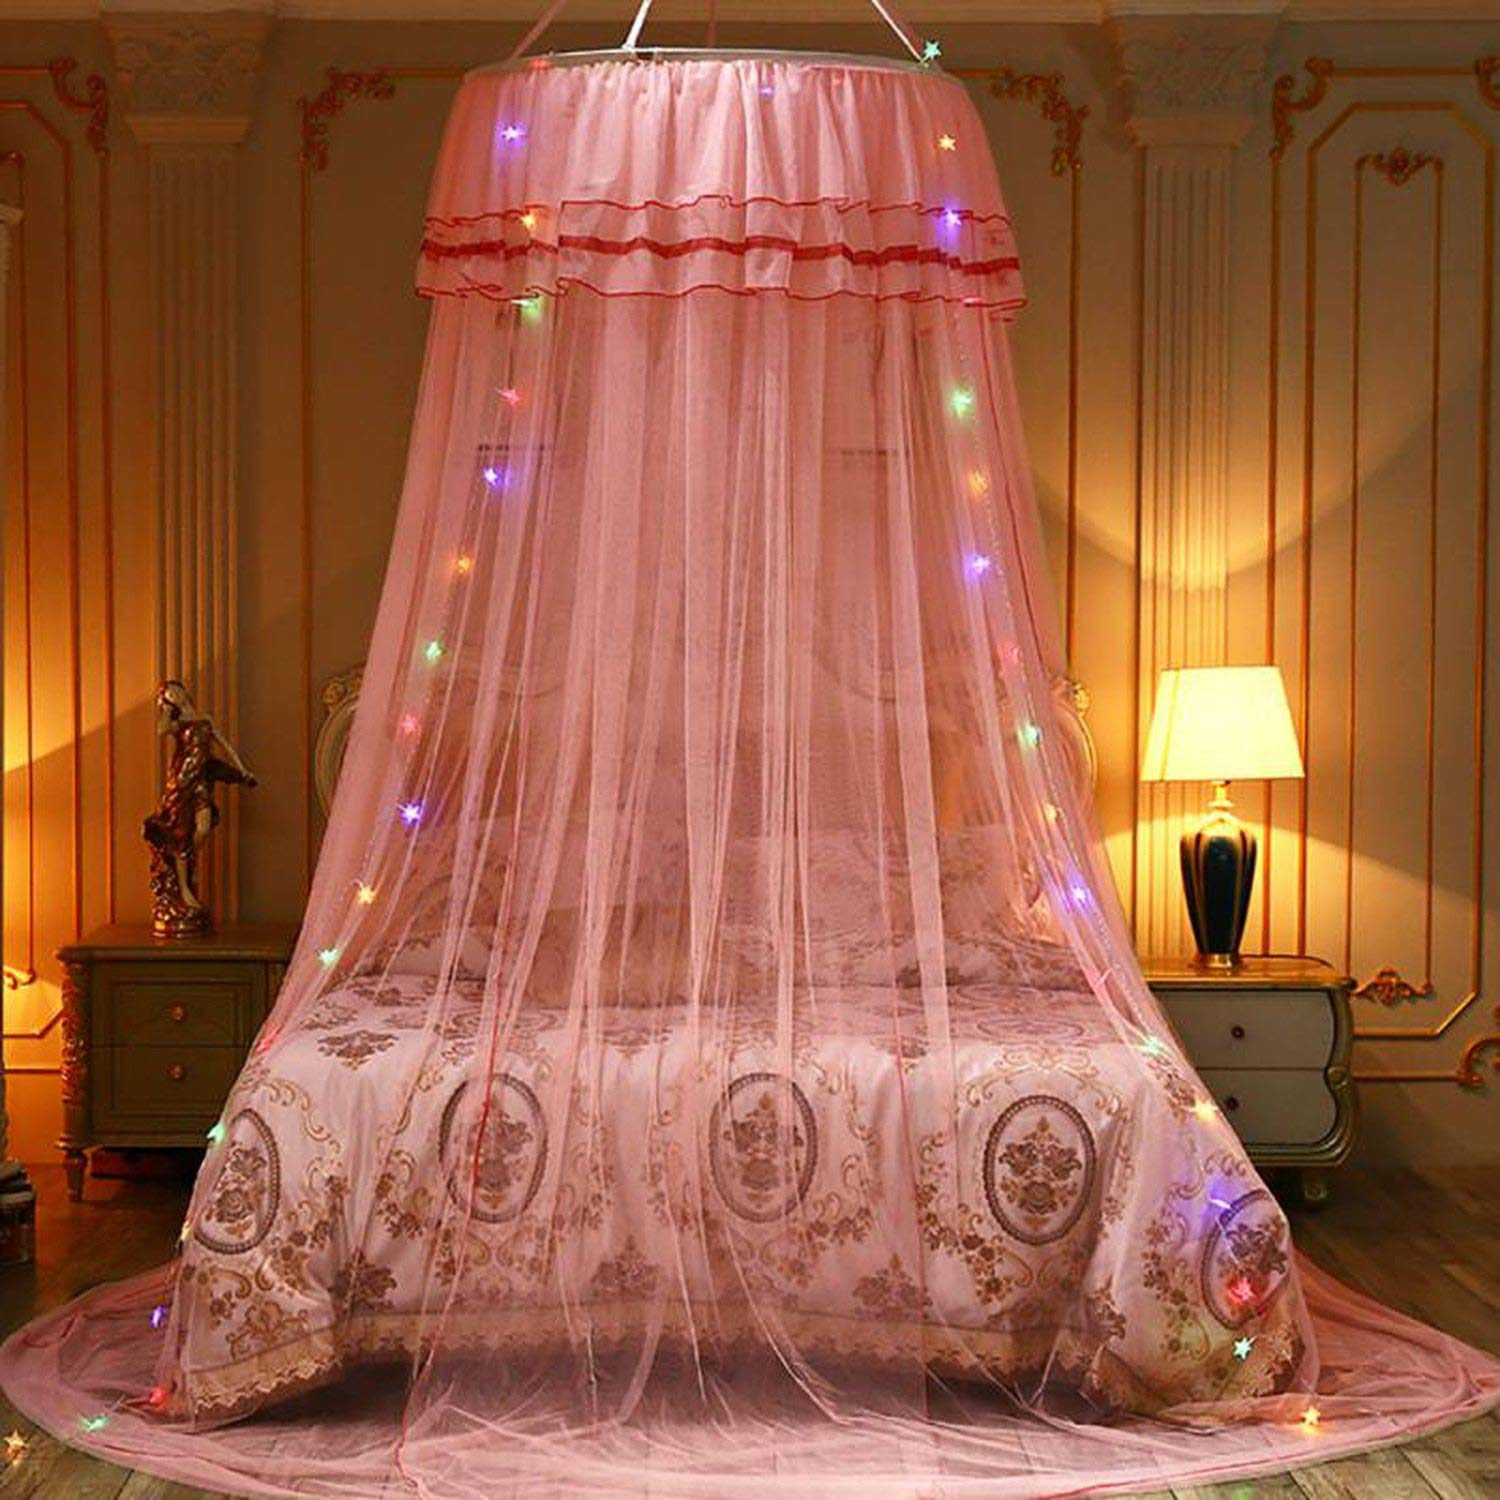 Elegant Canopy Mosquito Net for Double Bed Mosquito Repellent Tent Insect Reject Canopy Bed Curtain Bed Tent,3 by Try My Best Mosquito Net (Image #2)